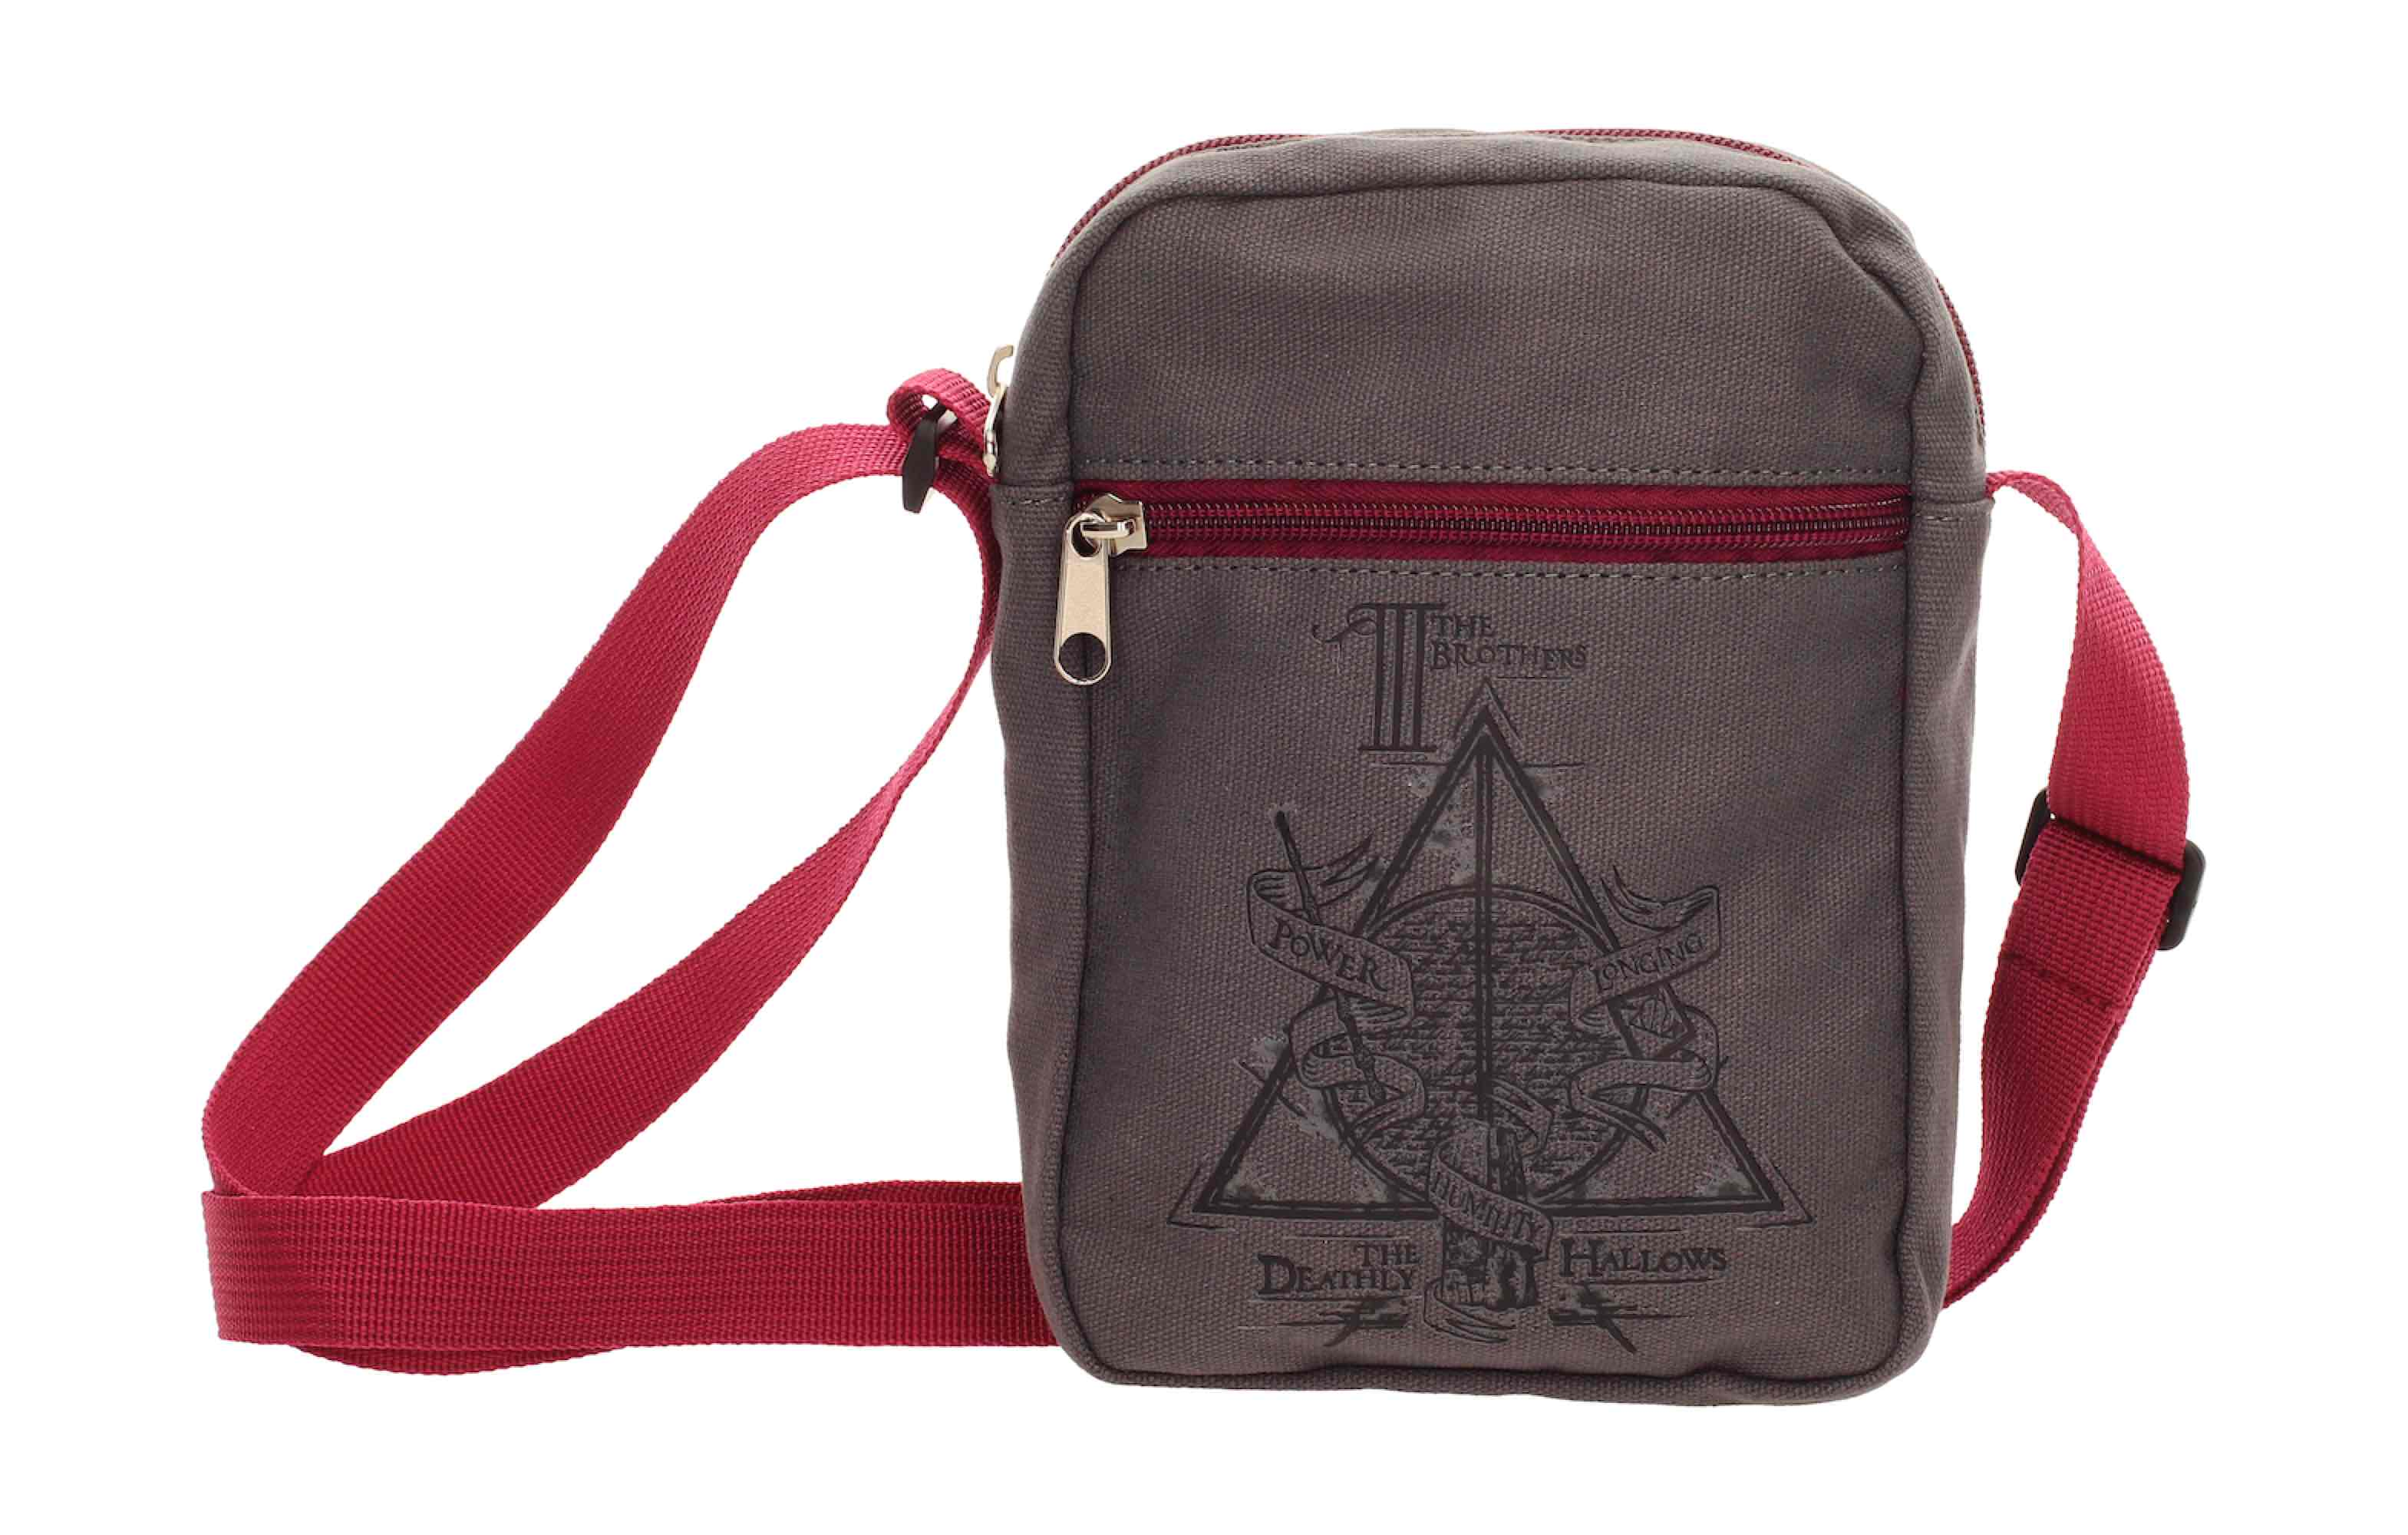 BOLSA PEQUEÑA TELA CANVAS DEATHLY HALLOWS HARRY POTTER